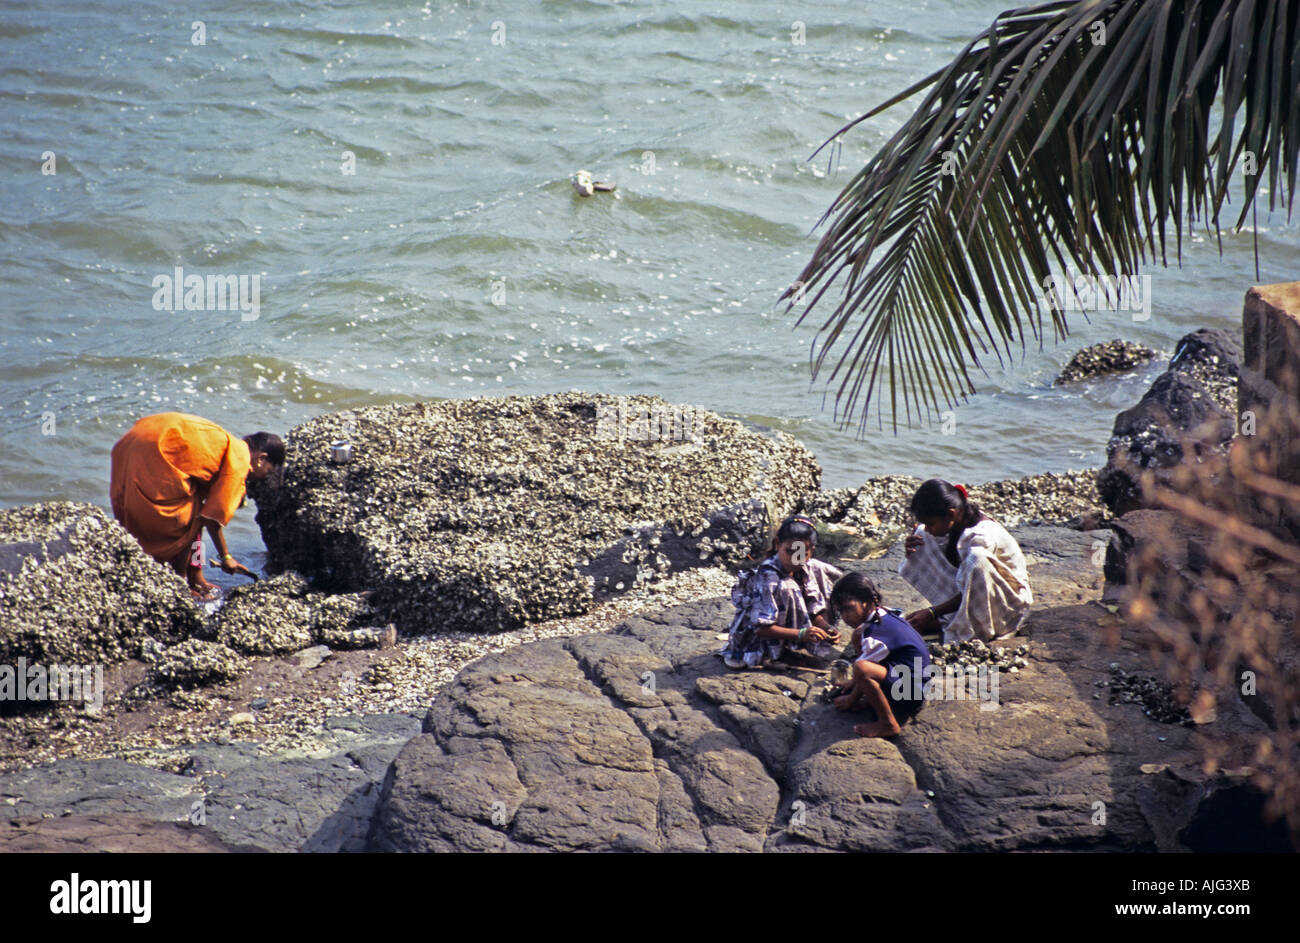 Indian family collecting cockles from rocky beach by sea, near Dabhol, India - Stock Image